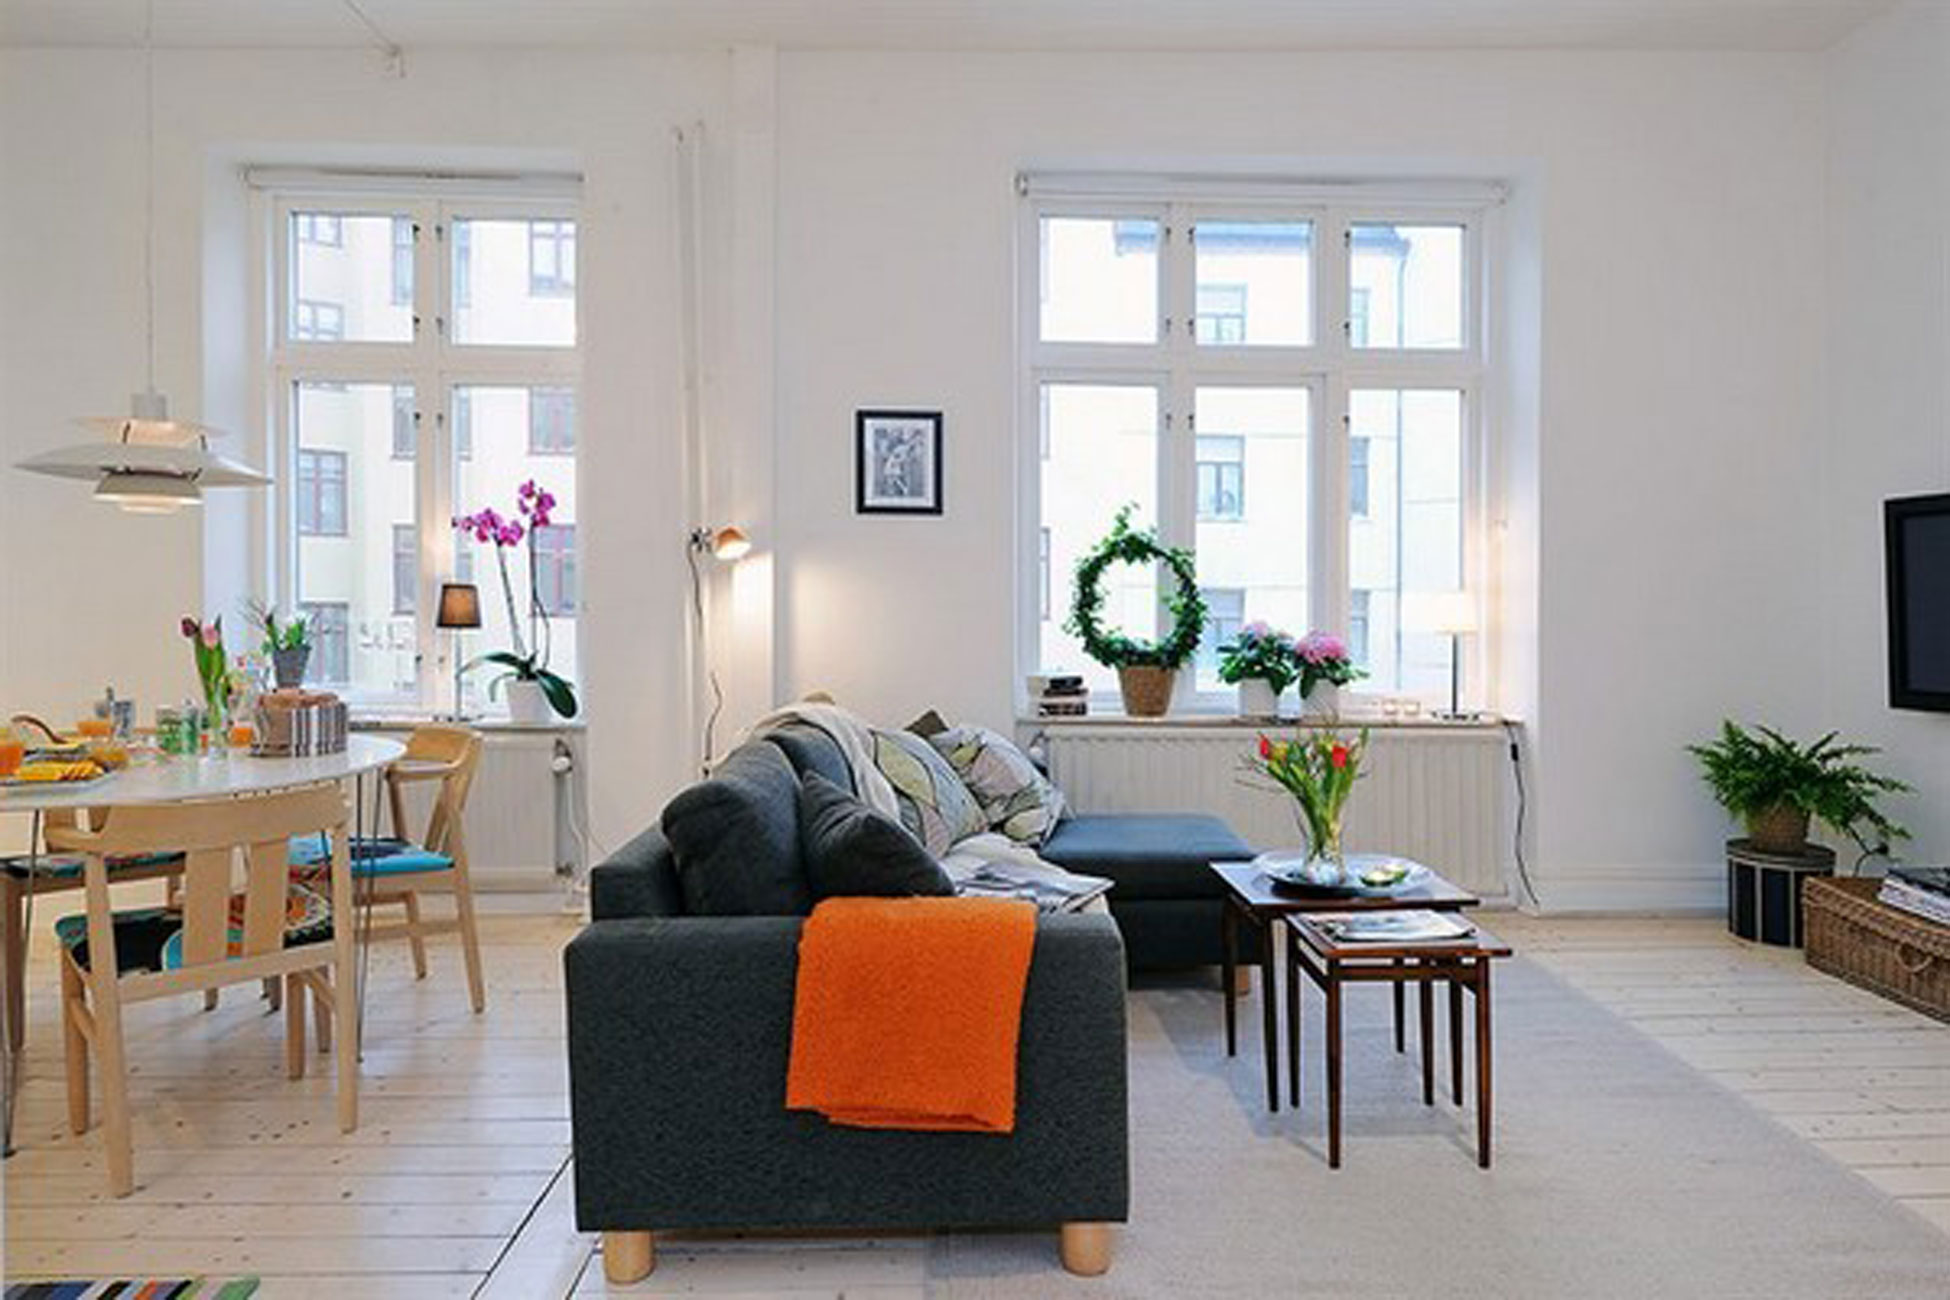 Groovy Contemporary Apartment Design In Small Loft Area And Bright Home Interior And Landscaping Oversignezvosmurscom